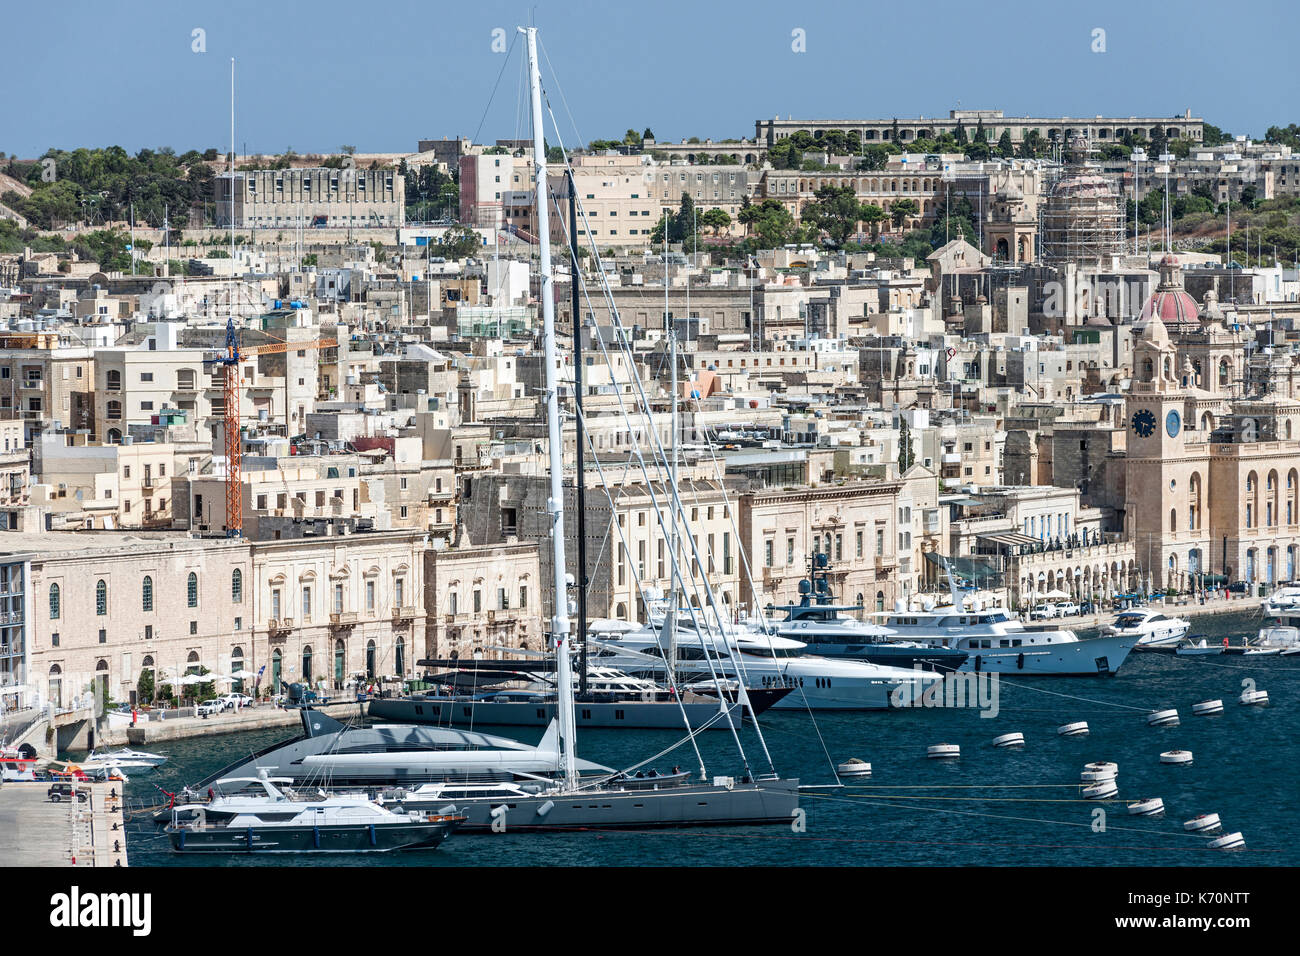 Grand Harbour Marina and the Birgu district of Valletta, the capital of Malta. - Stock Image